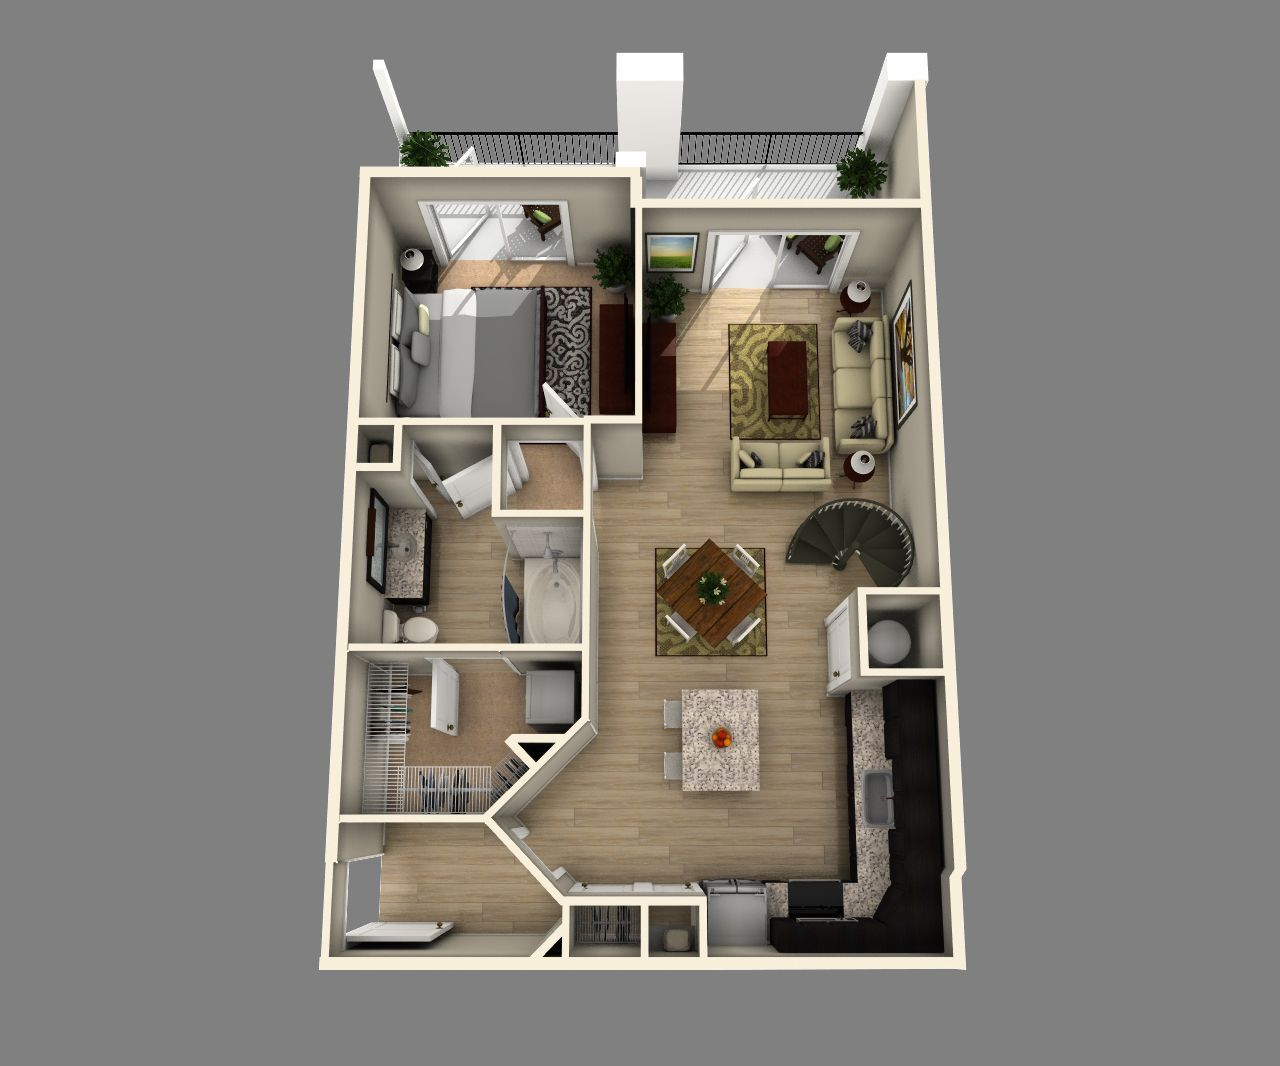 20 39 x 24 39 floor plan google search projects to try for Walk up apartment floor plans